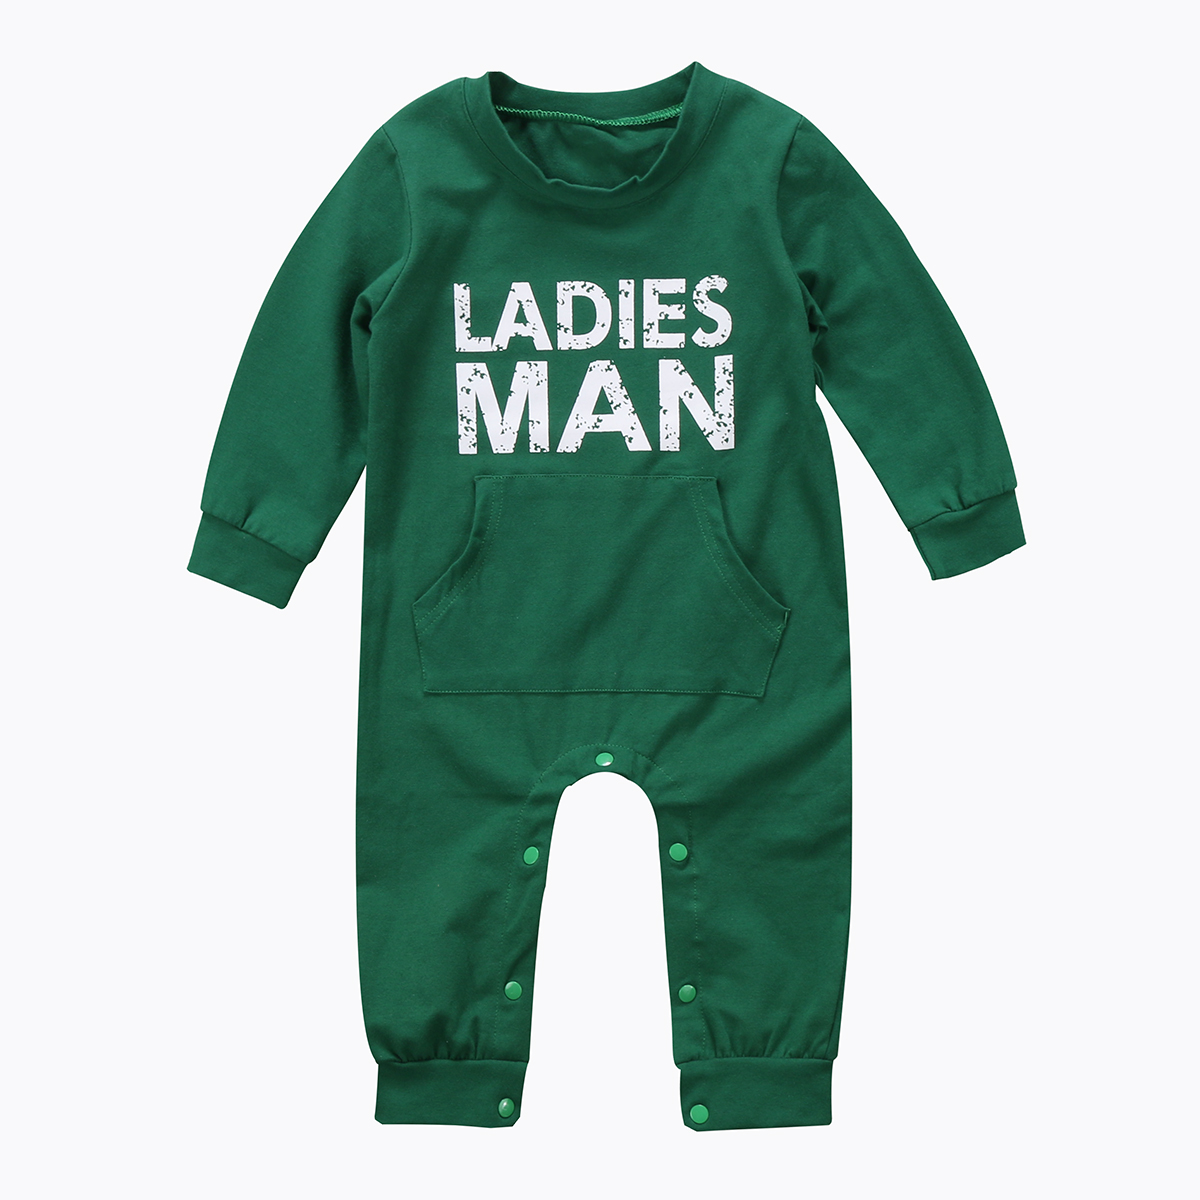 Newborn Baby Infant Boy Ladies Man Letter Printed Romper Jumpsuit Long Sleeve Outfits Clothes New summer baby clothes babys romper newborn toddler infant baby boy girl letter print short sleeve jumpsuit romper clothes je13 f